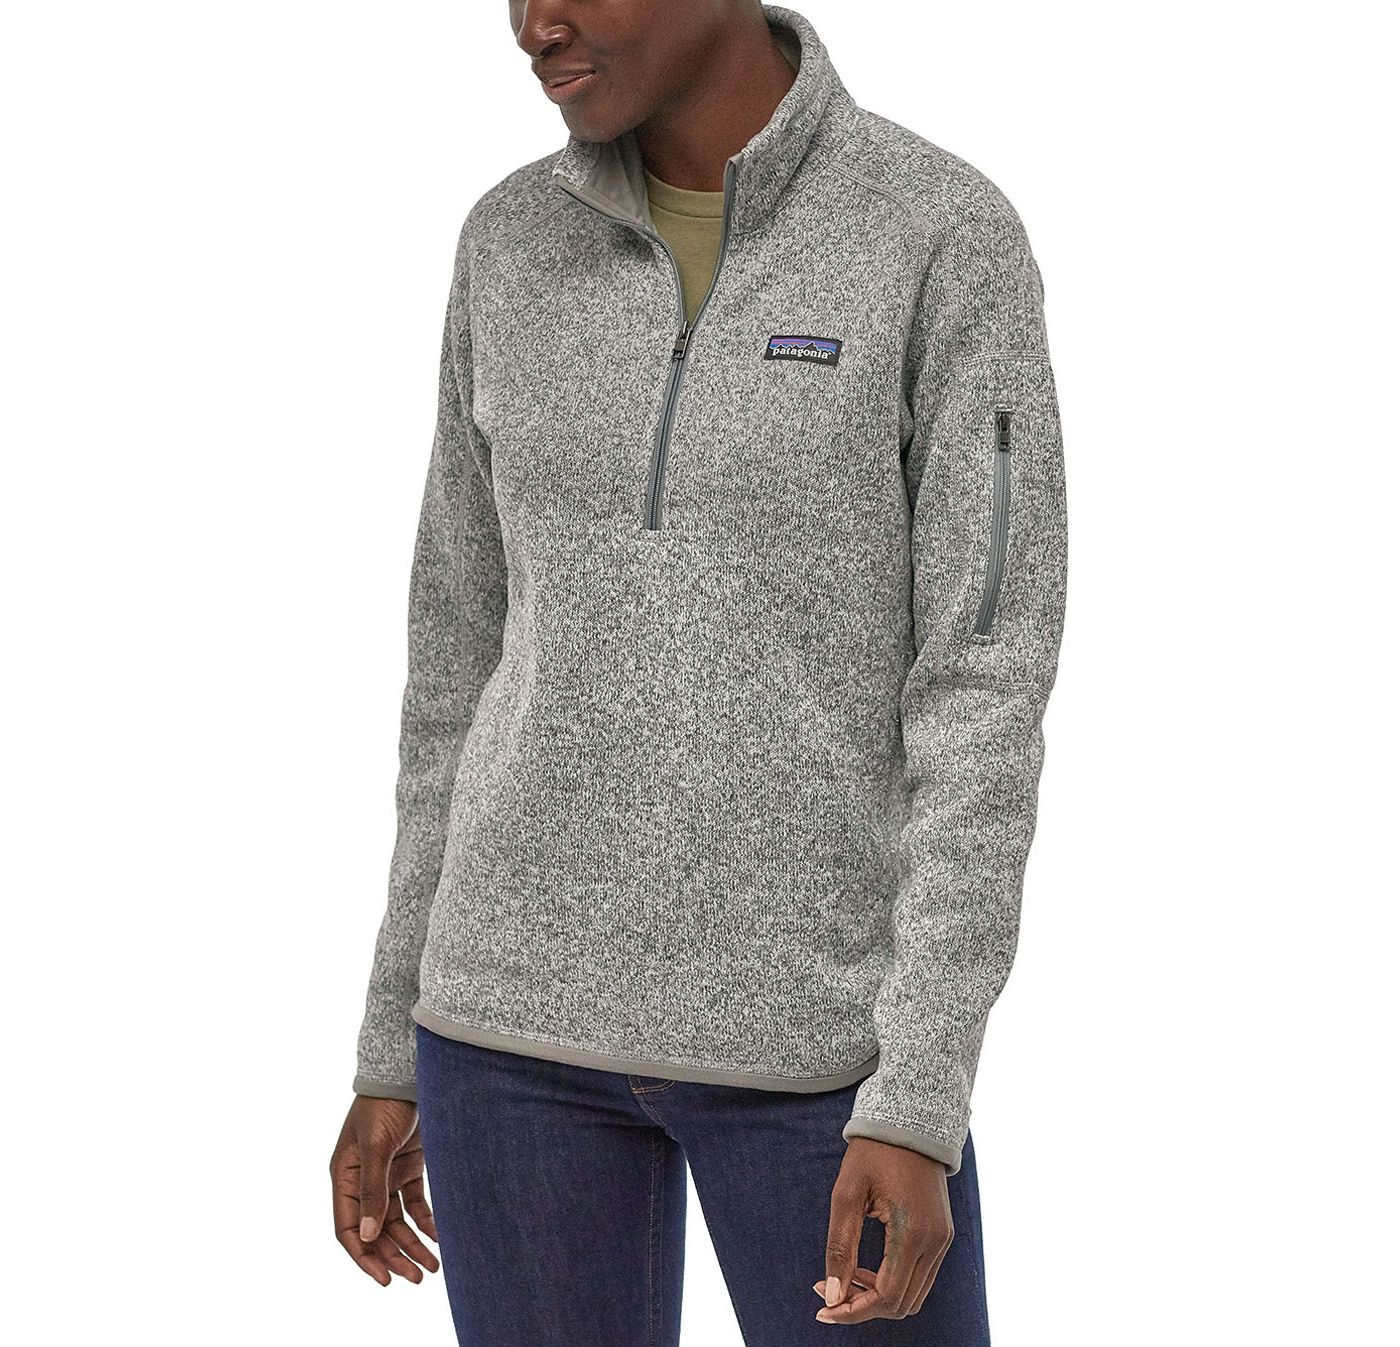 Patagonia Women's Better Sweater 1/4 Zip Pullover